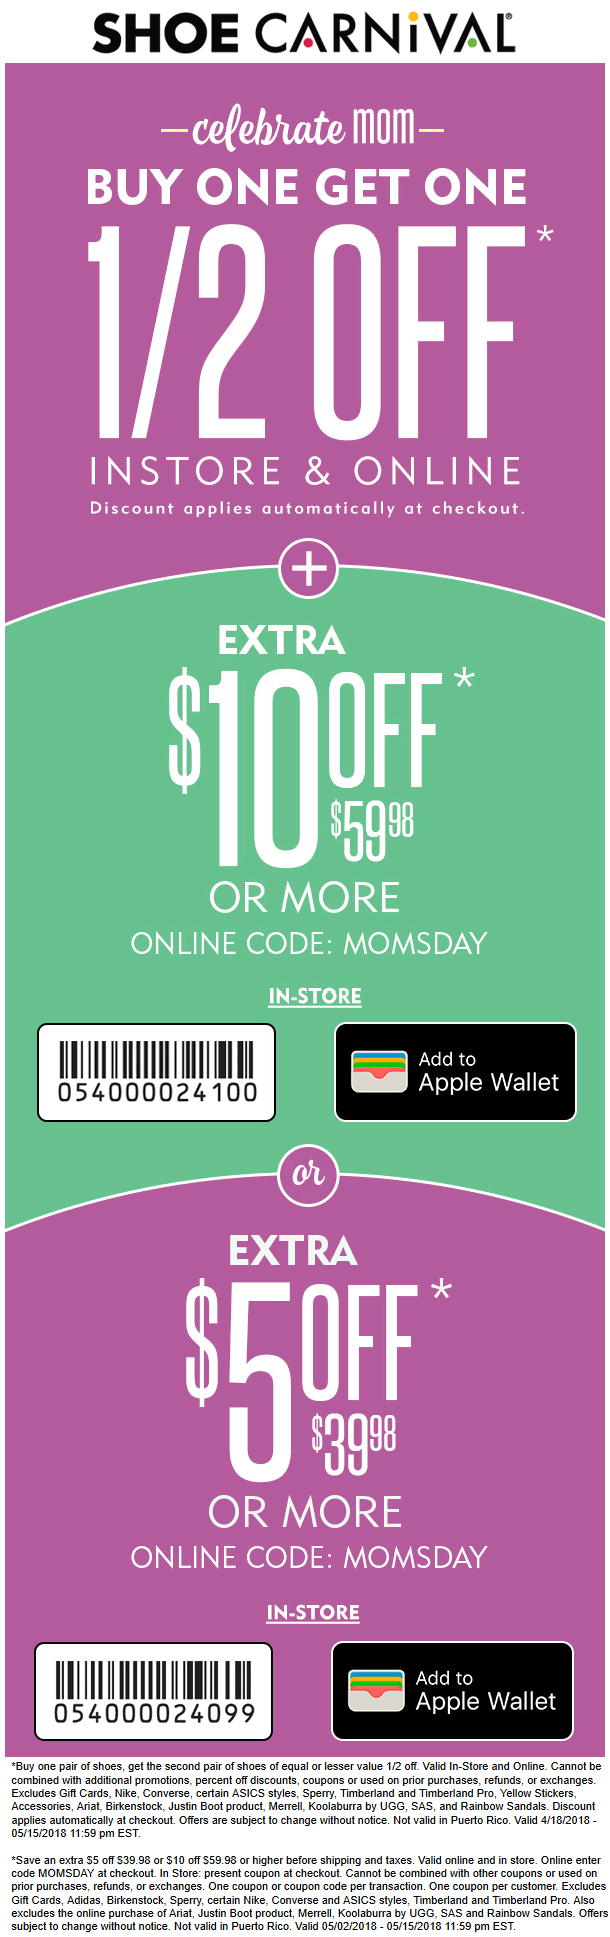 Shoe Carnival Coupon August 2018 $10 off $60 + 2nd pair 50% off today at Shoe Carnival, or online via promo code MOMSDAY